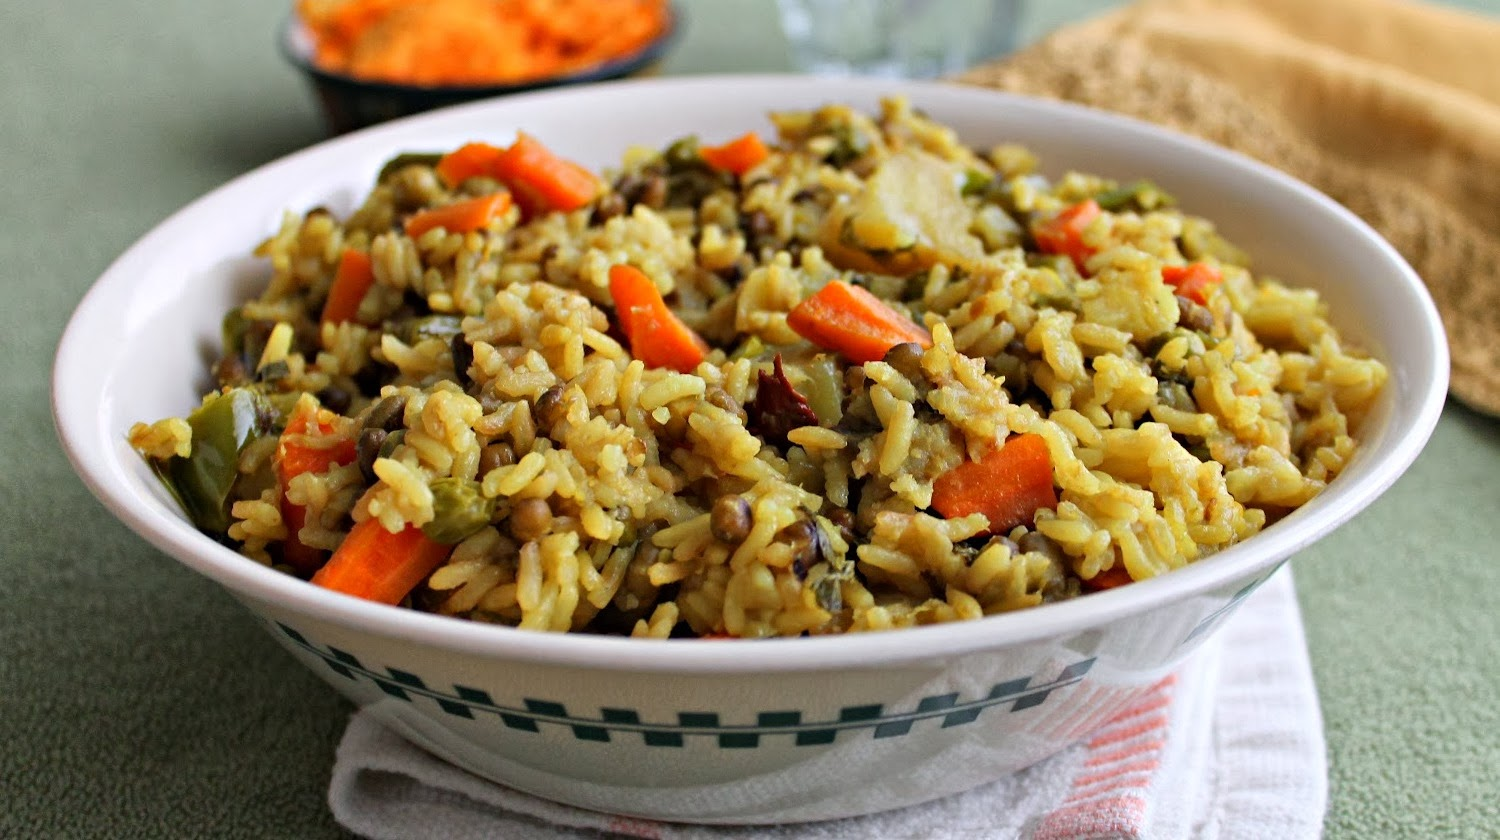 http://recipes.sandhira.com/vegetable-khichdi.html